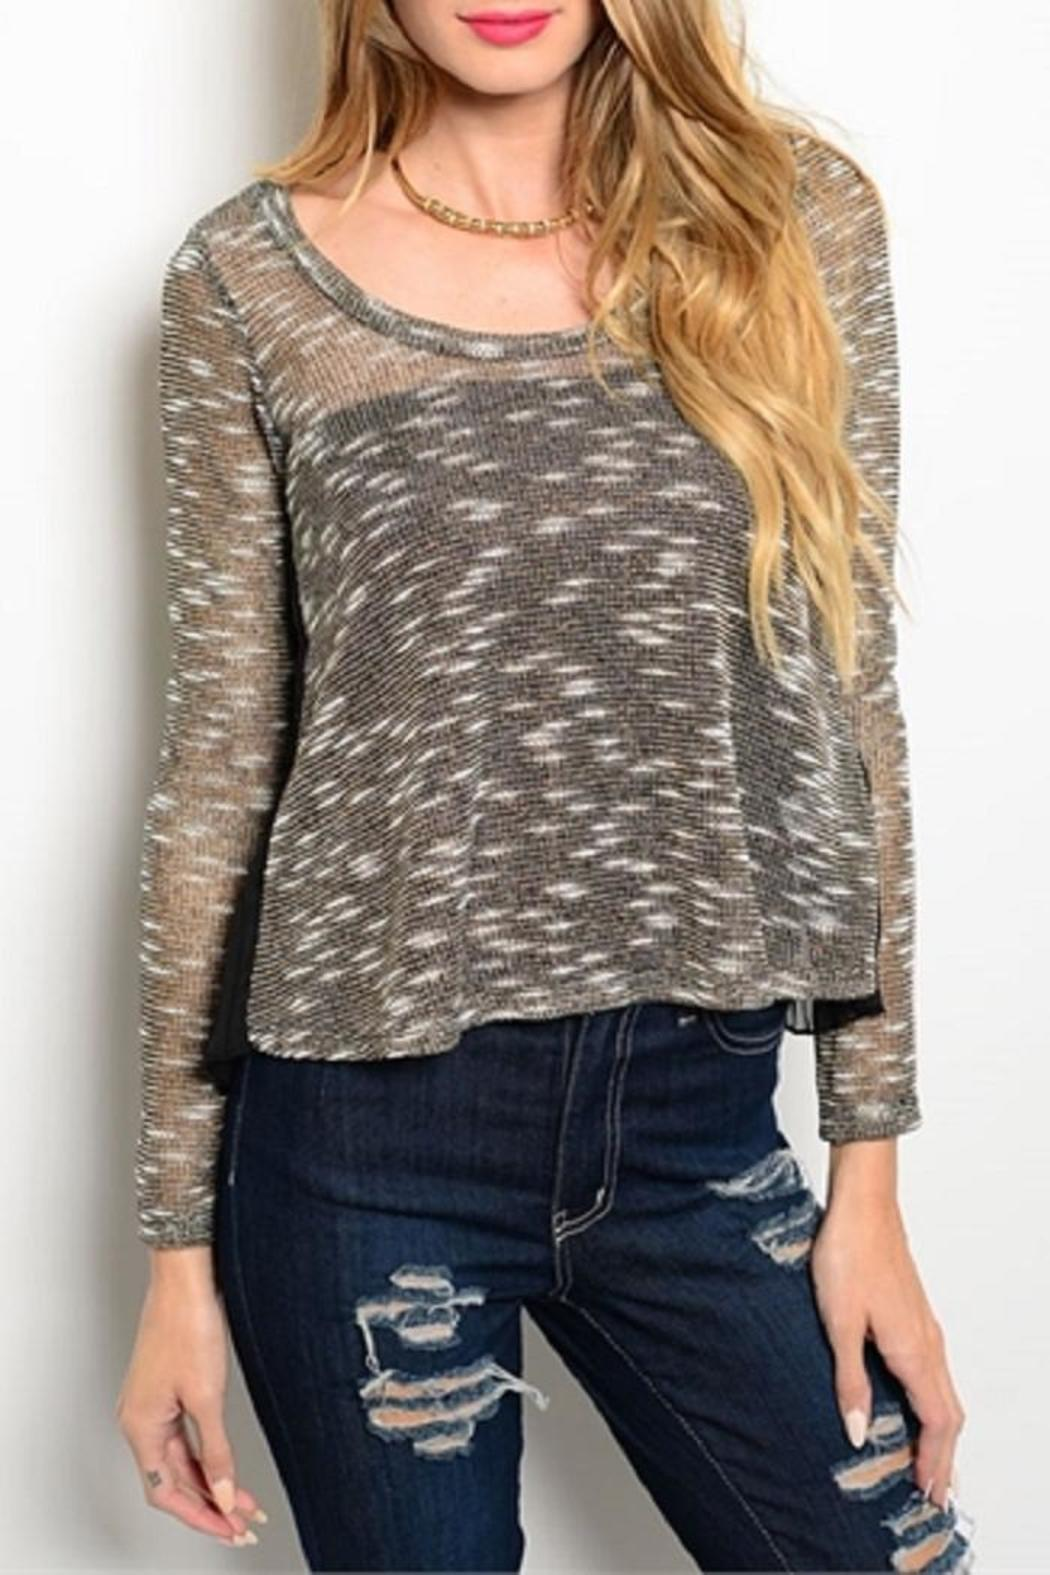 Adore Clothes & More Gold Black Sweater - Main Image